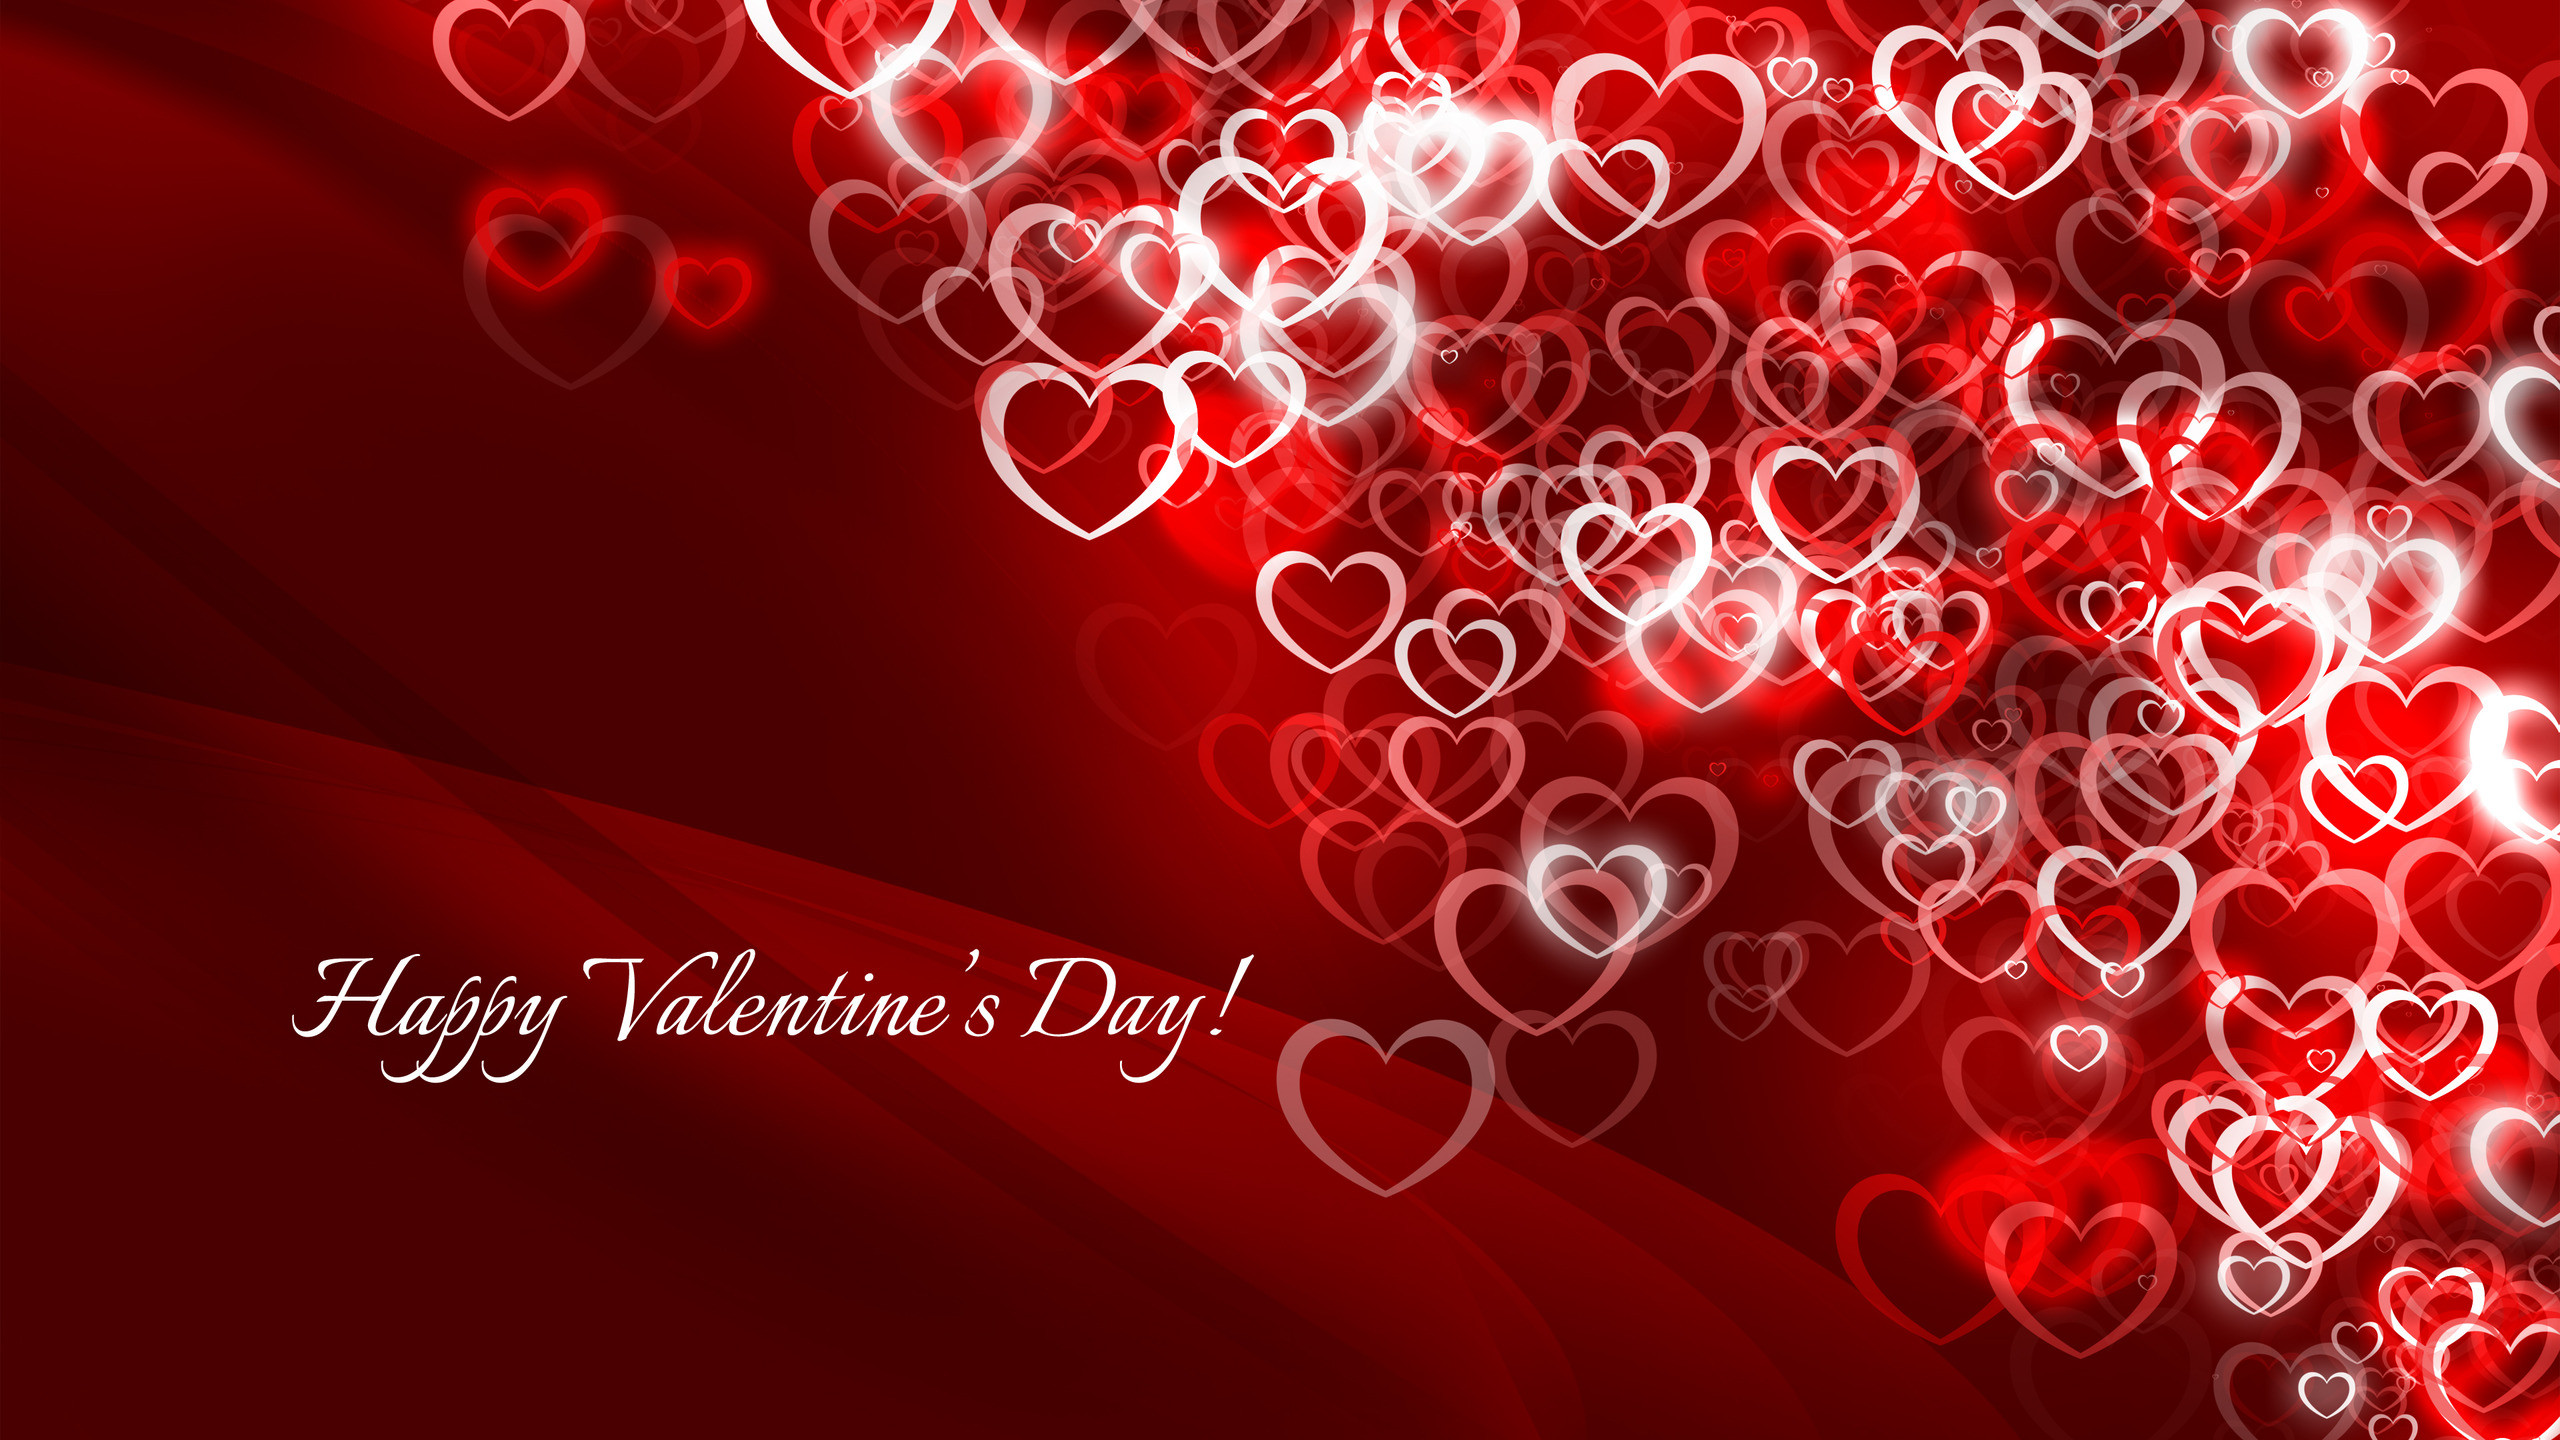 valentine s day wallpaper (67+ images)